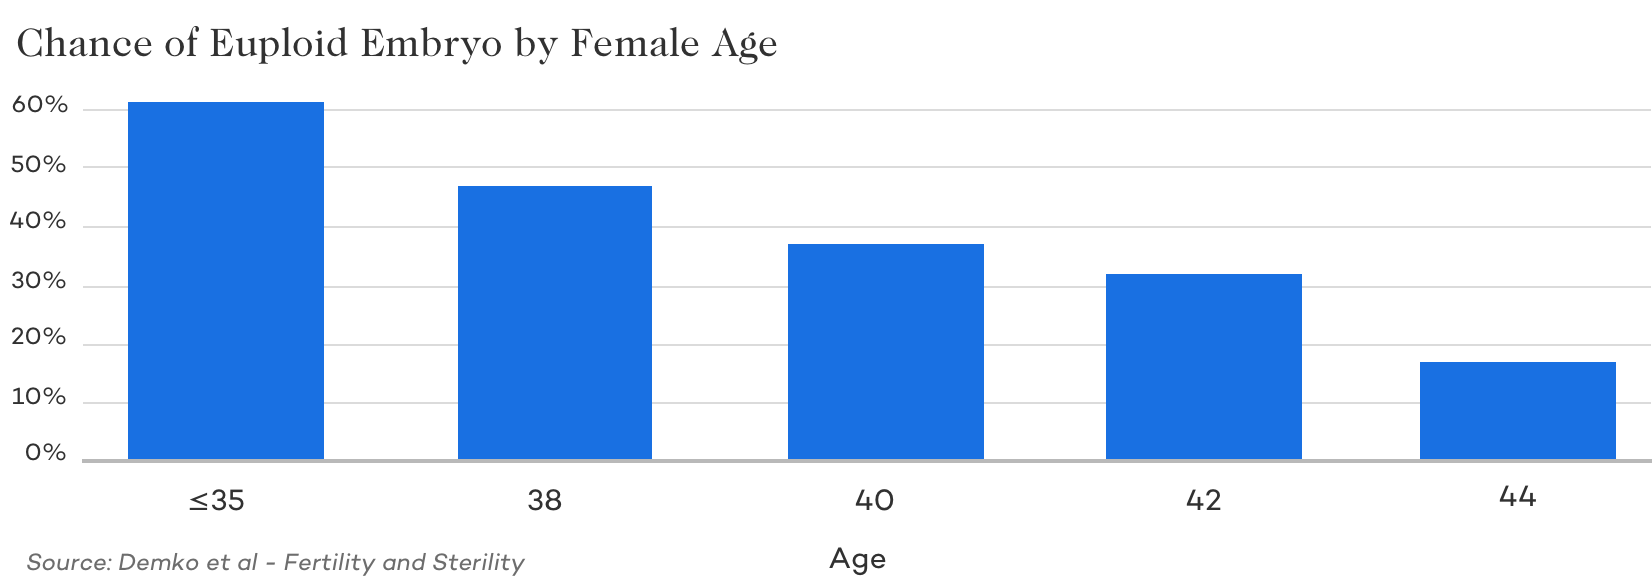 Chance of Euploid Embryo by Female Age